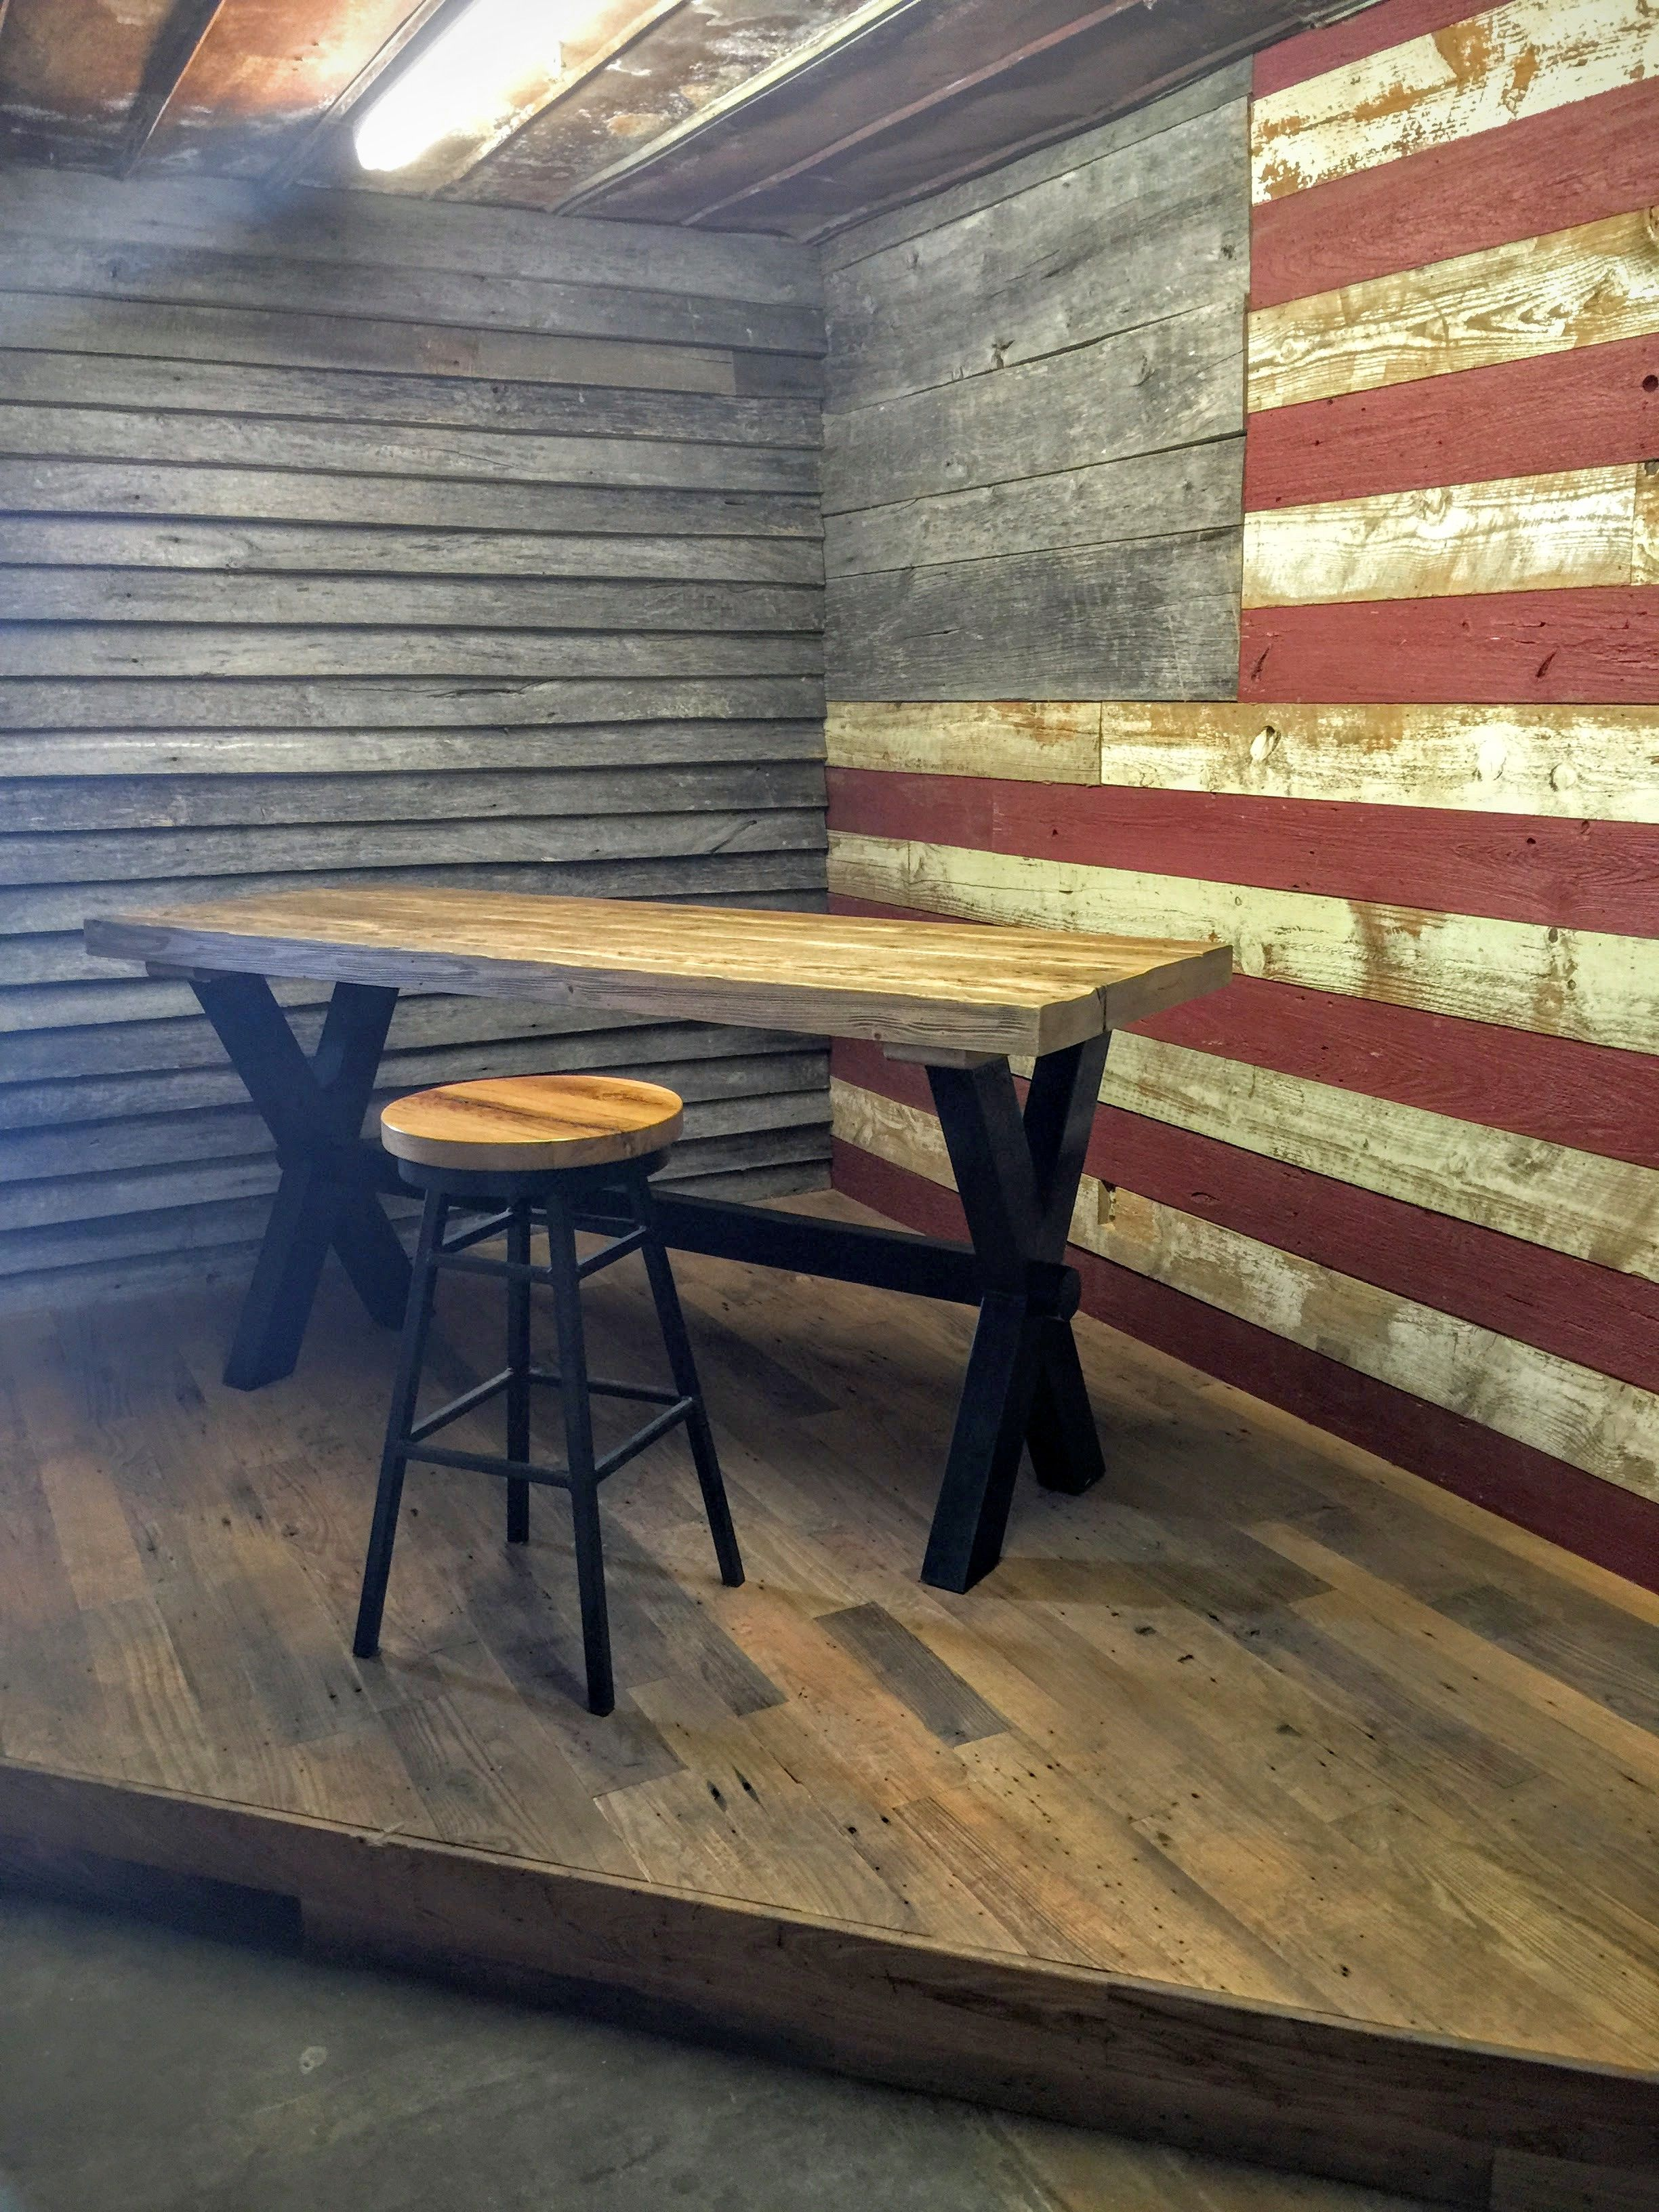 Outdoor garage decorations  Love how beautiful the American flag is using reclaimed barn wood